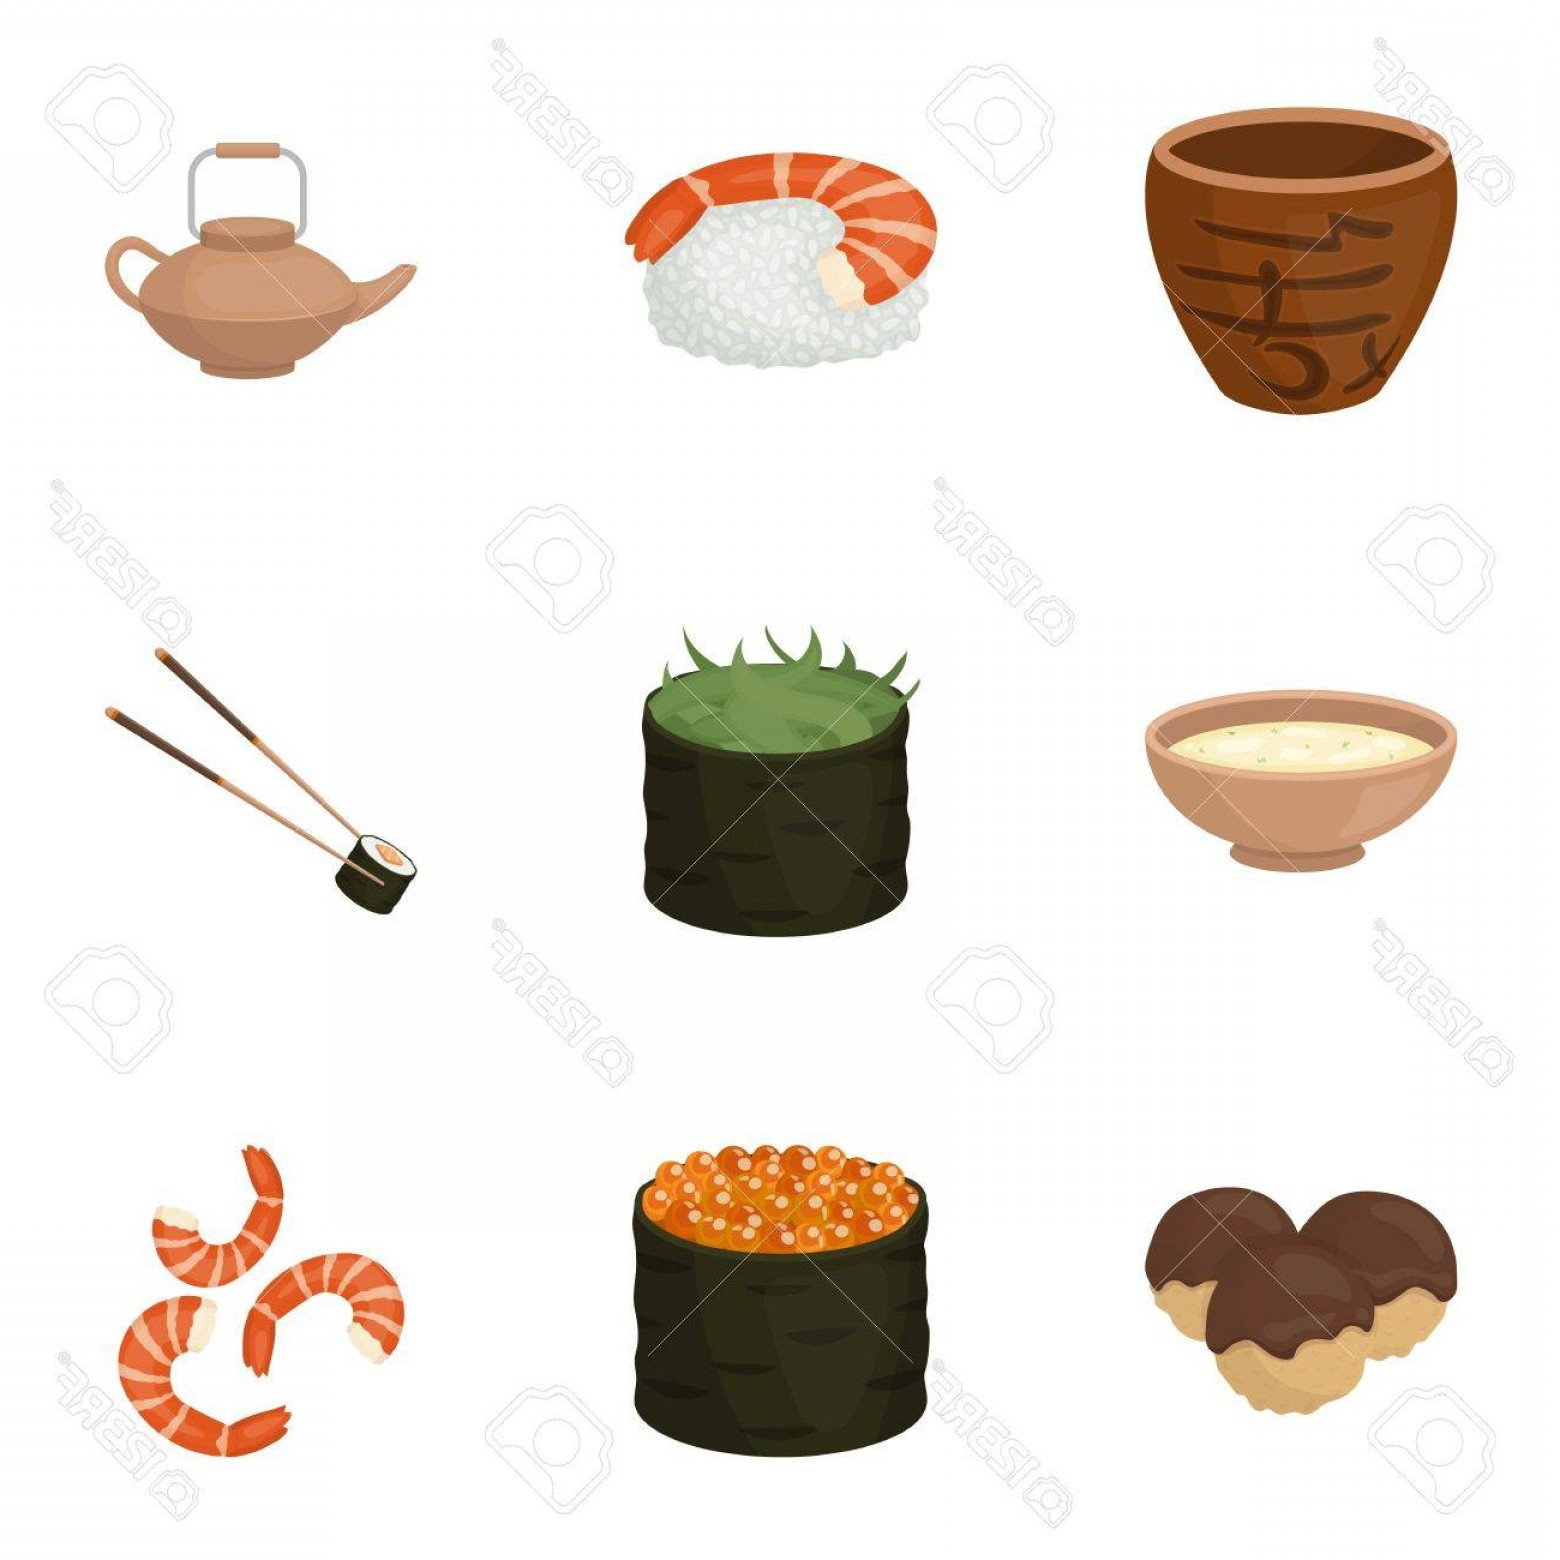 Sushi Vector Art: Photostock Vector Sushi Set Icons In Cartoon Style Big Collection Of Sushi Vector Symbol Stock Illustration